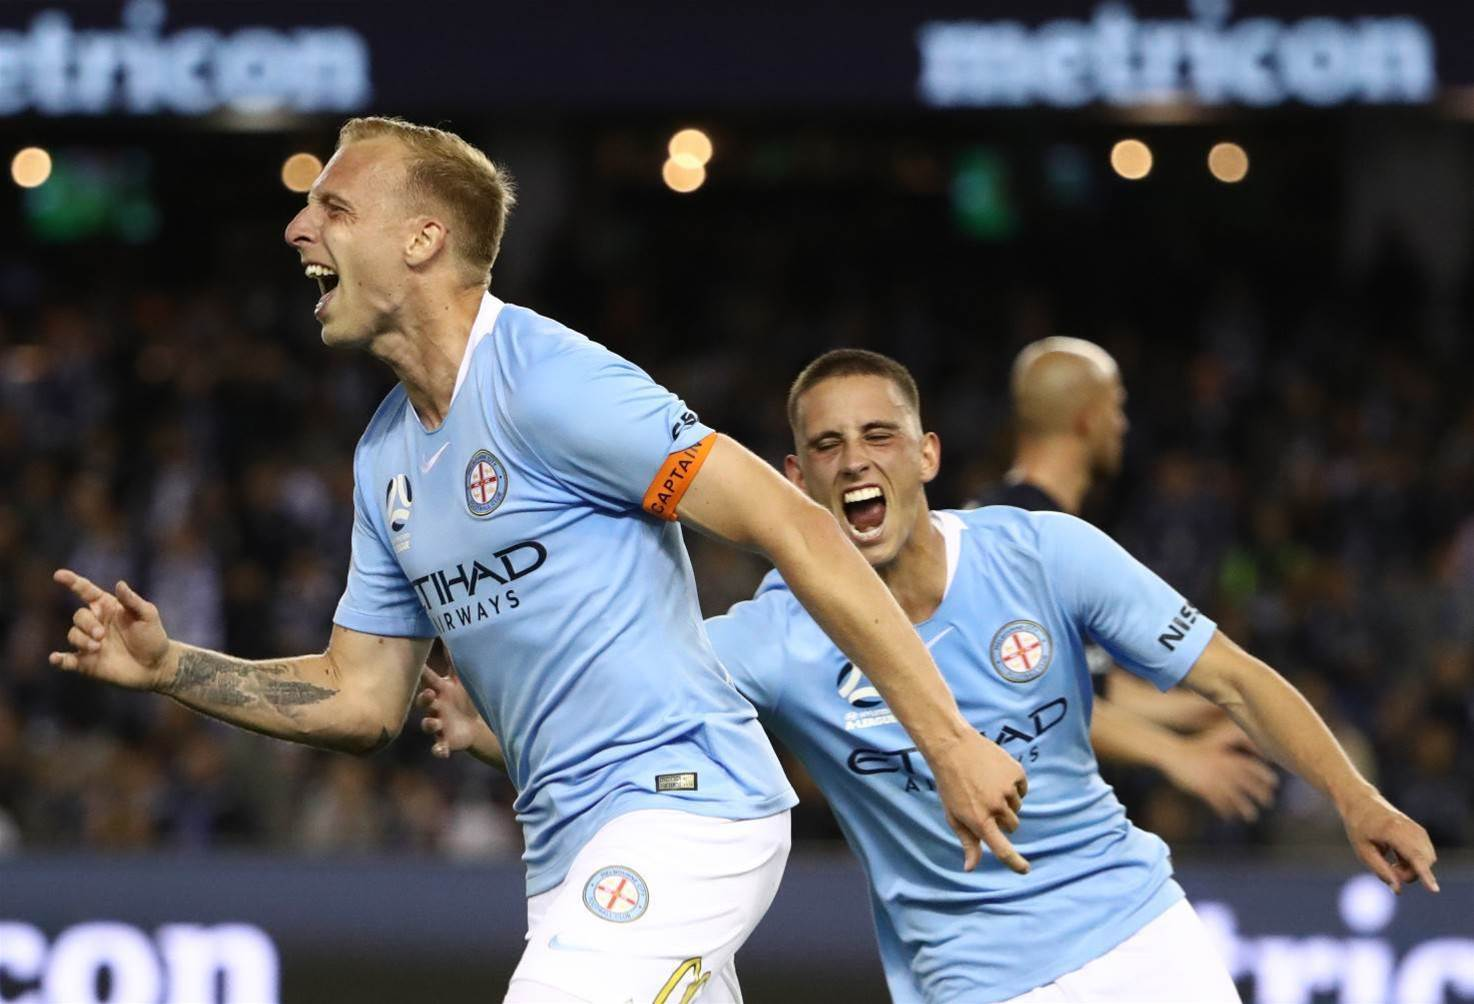 Melbourne Victory v City Player Ratings